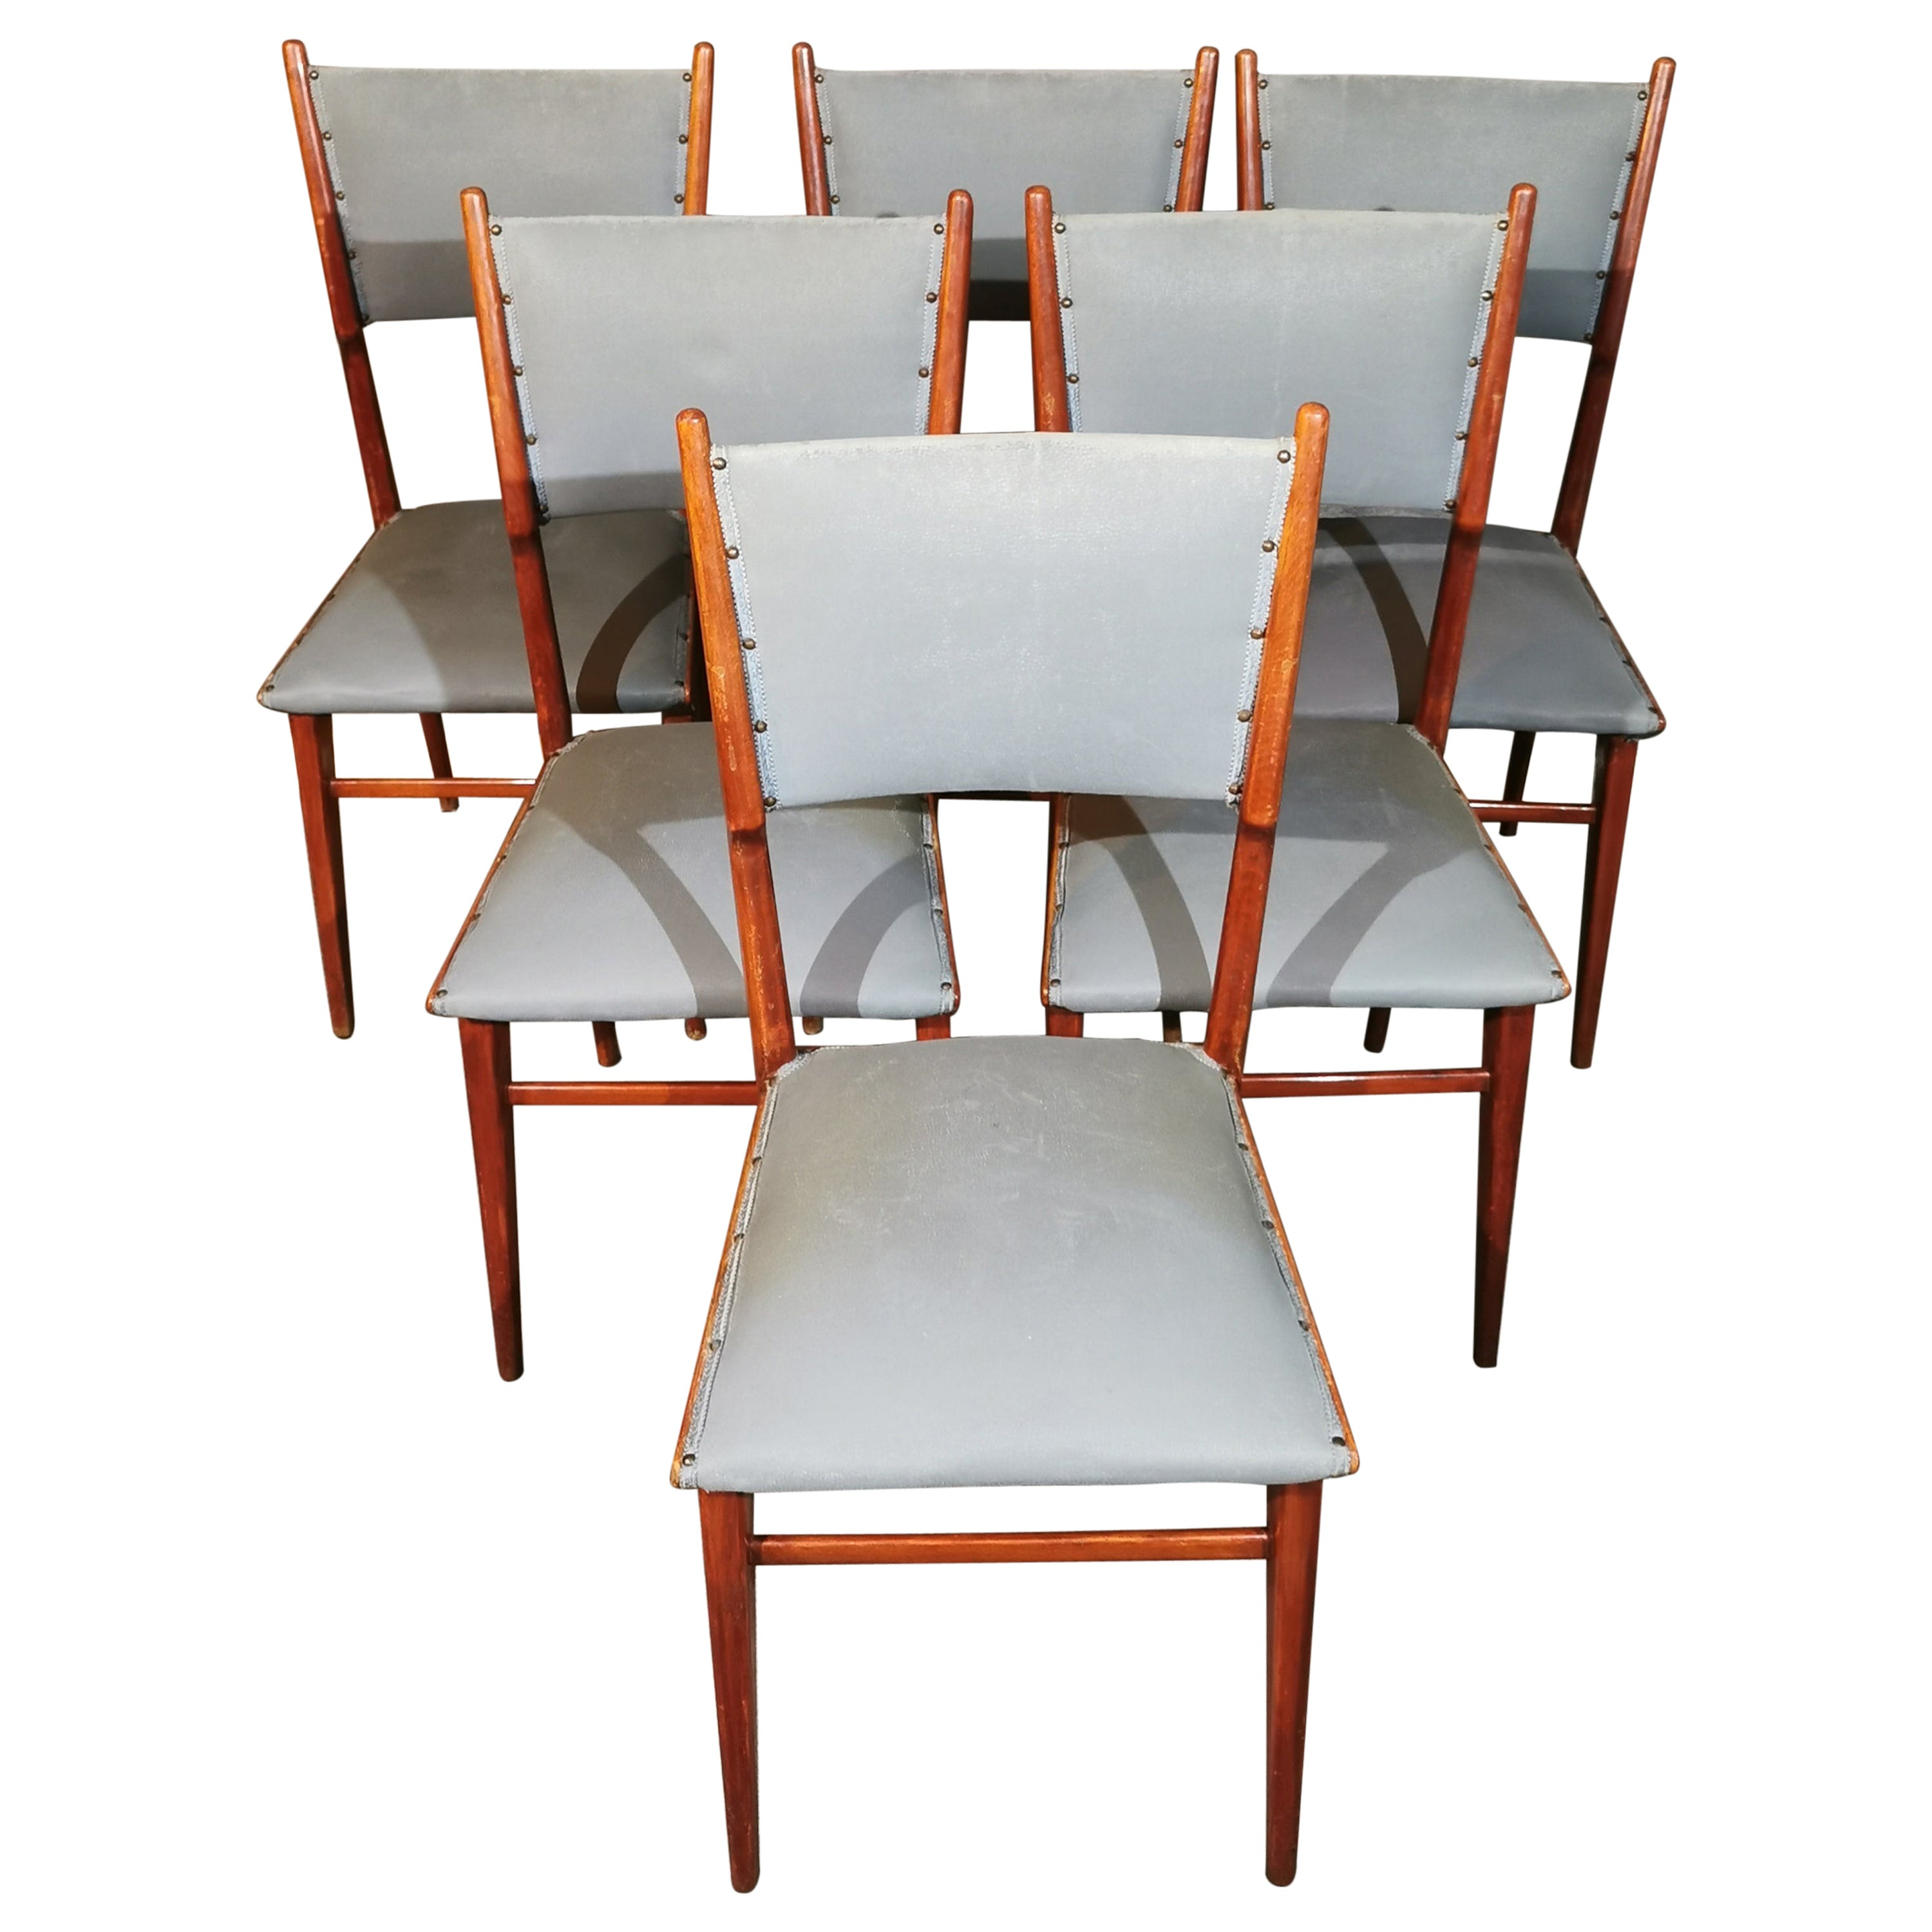 Midcentury Chairs by Carlo de Carli in Leather and Wood Italy 1960s, Set of 6